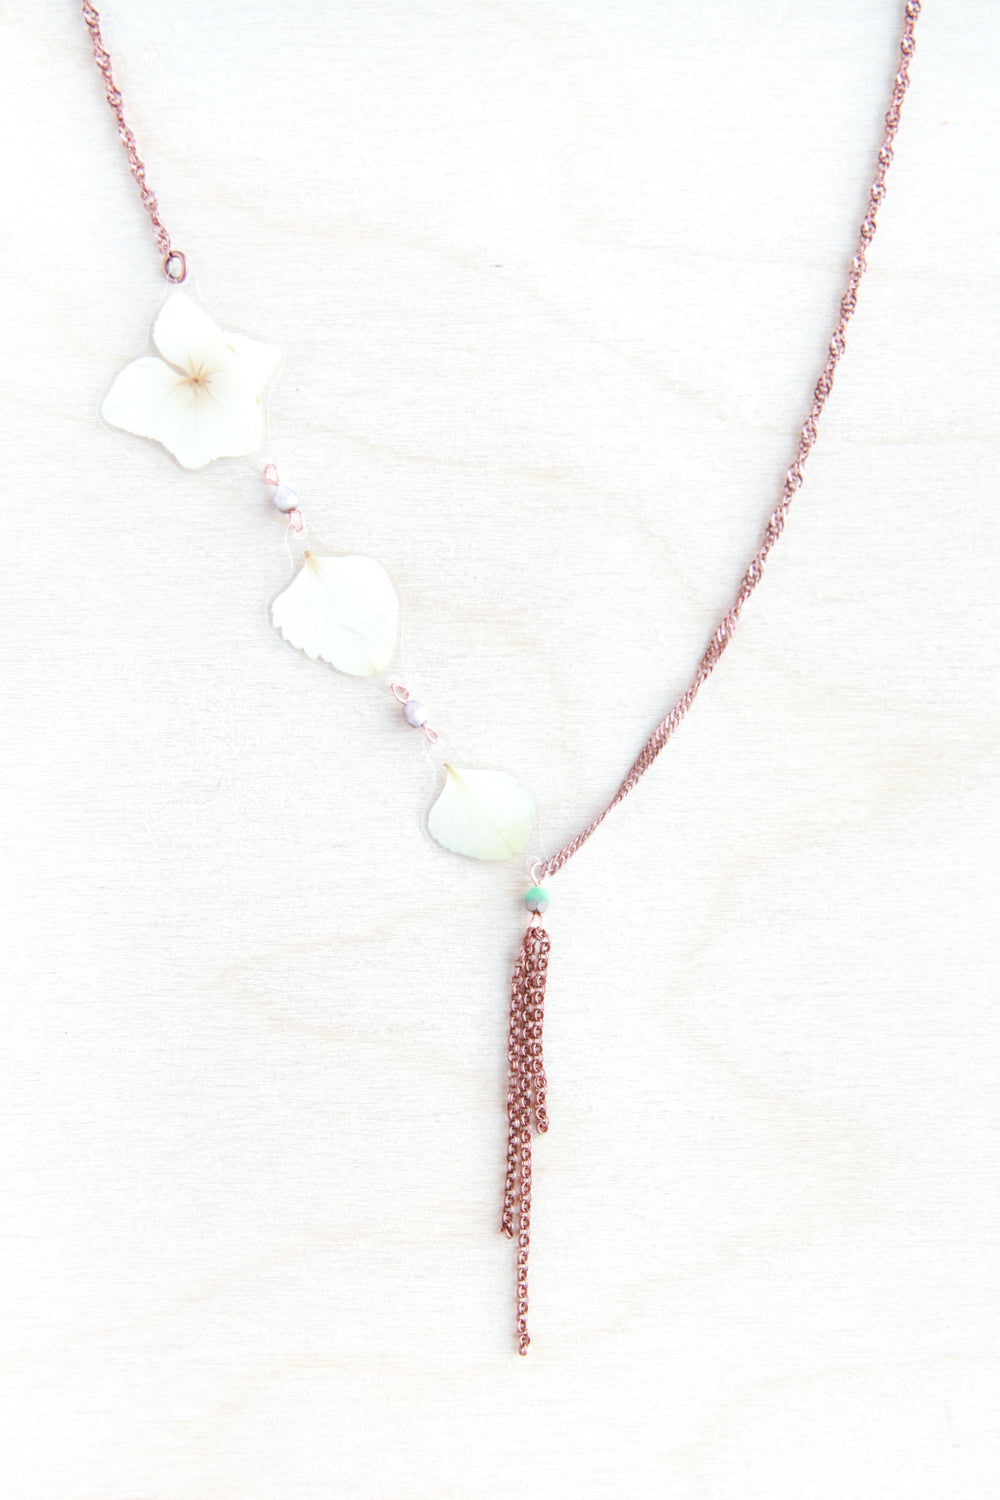 White Hydrangea Pressed Flower Necklace with Turquoise Glass Beads & Double Rolo Dangles